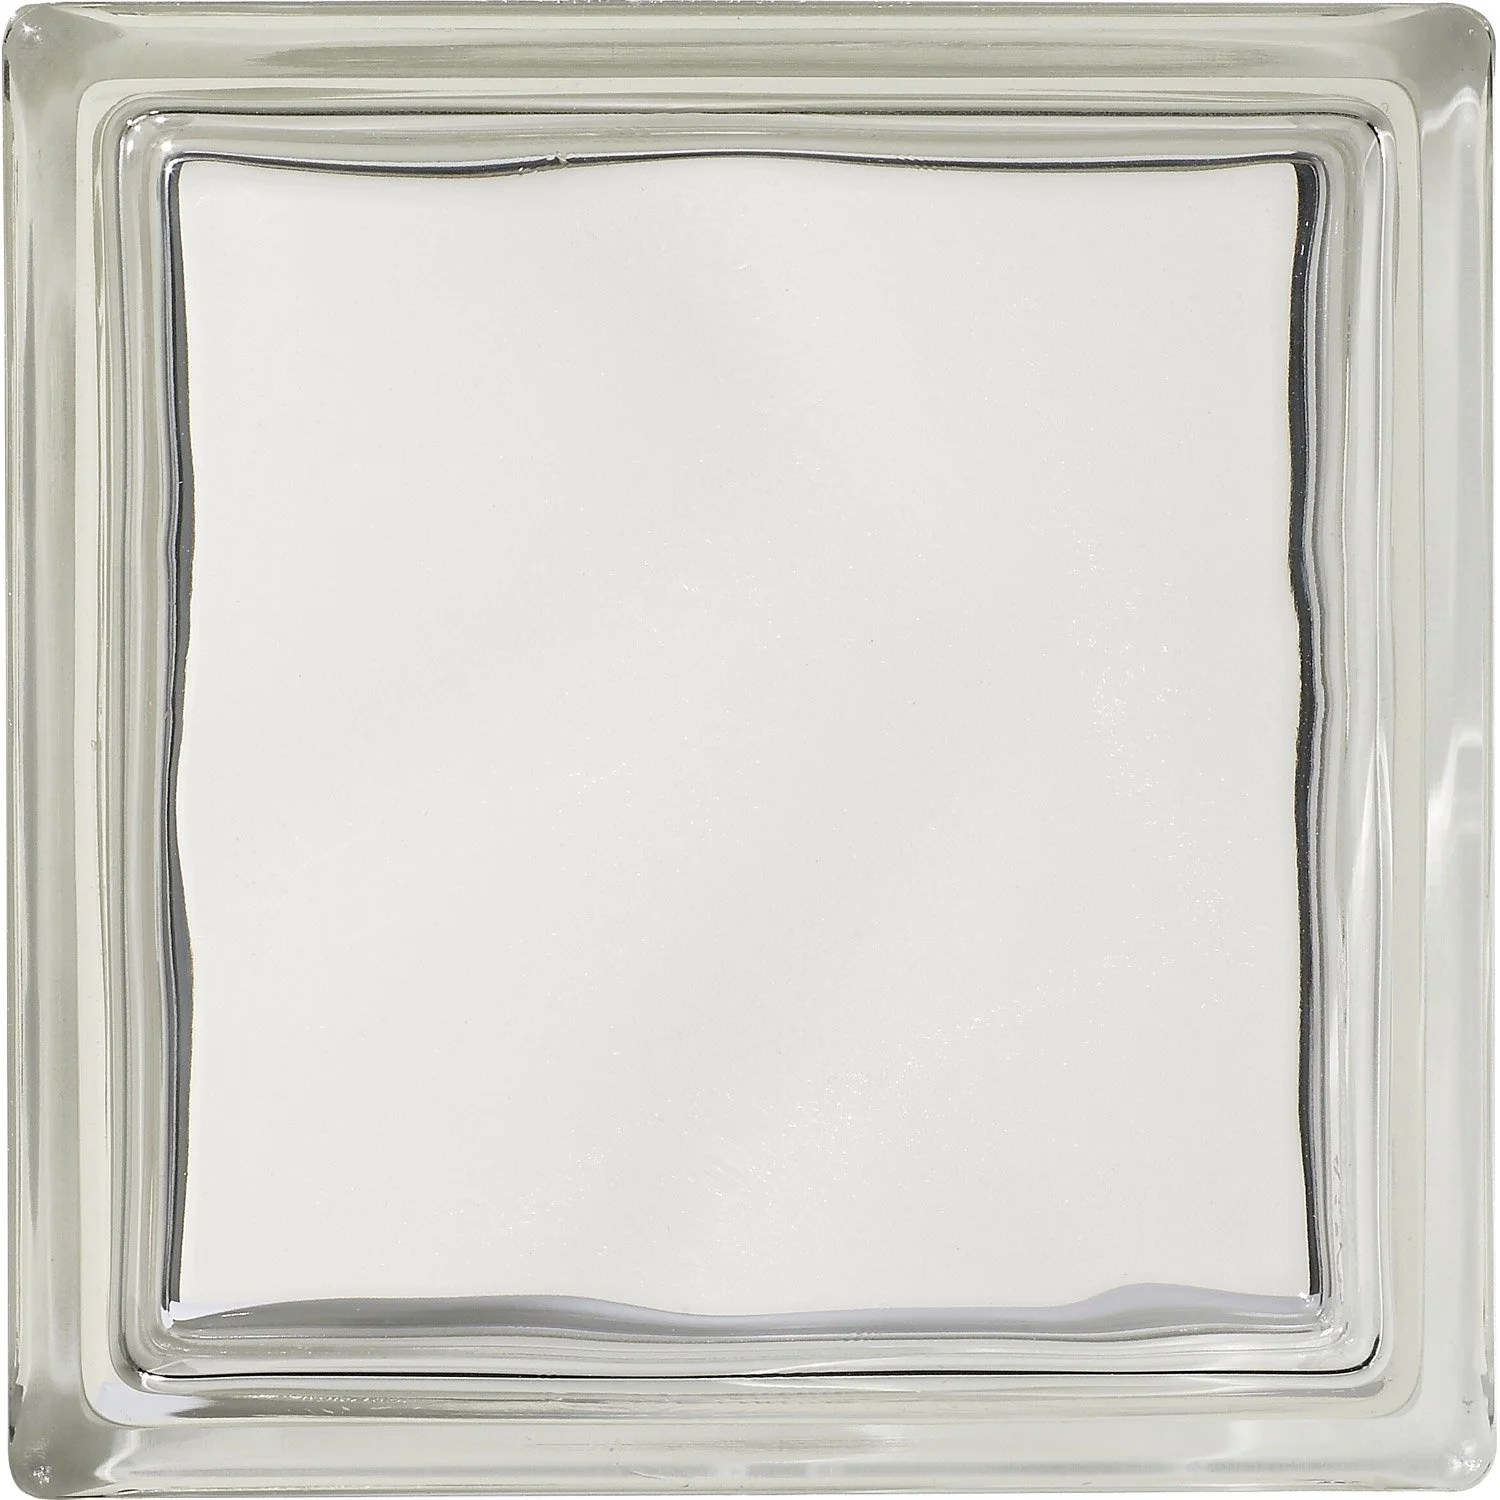 Carreau De Verre Brique De Verre Transparent Lisse Brillant